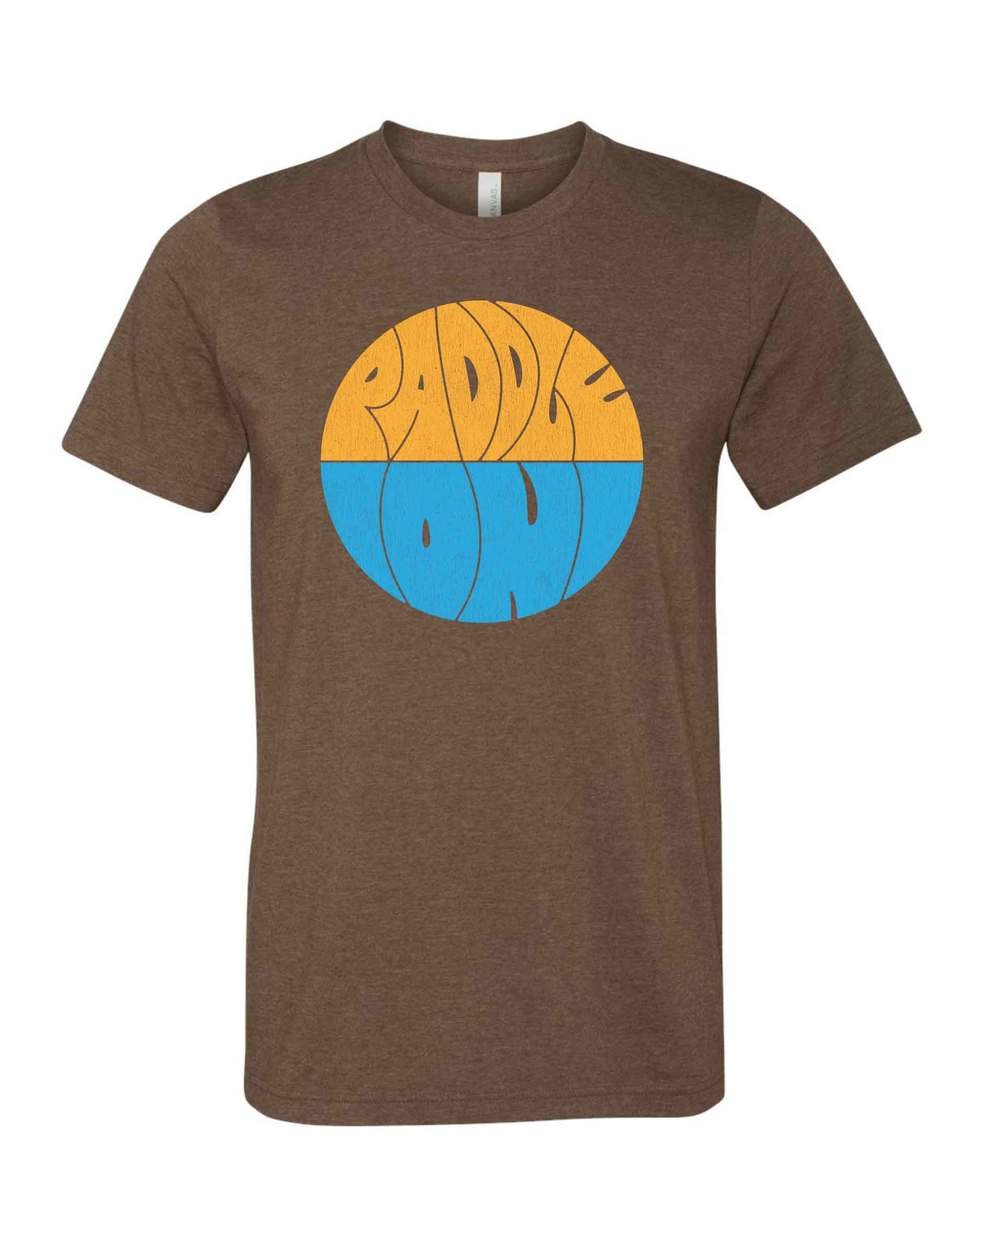 LakeLuster_Tshirts_PaddleOn_Mens_3001_HeatherBrown_A.jpg